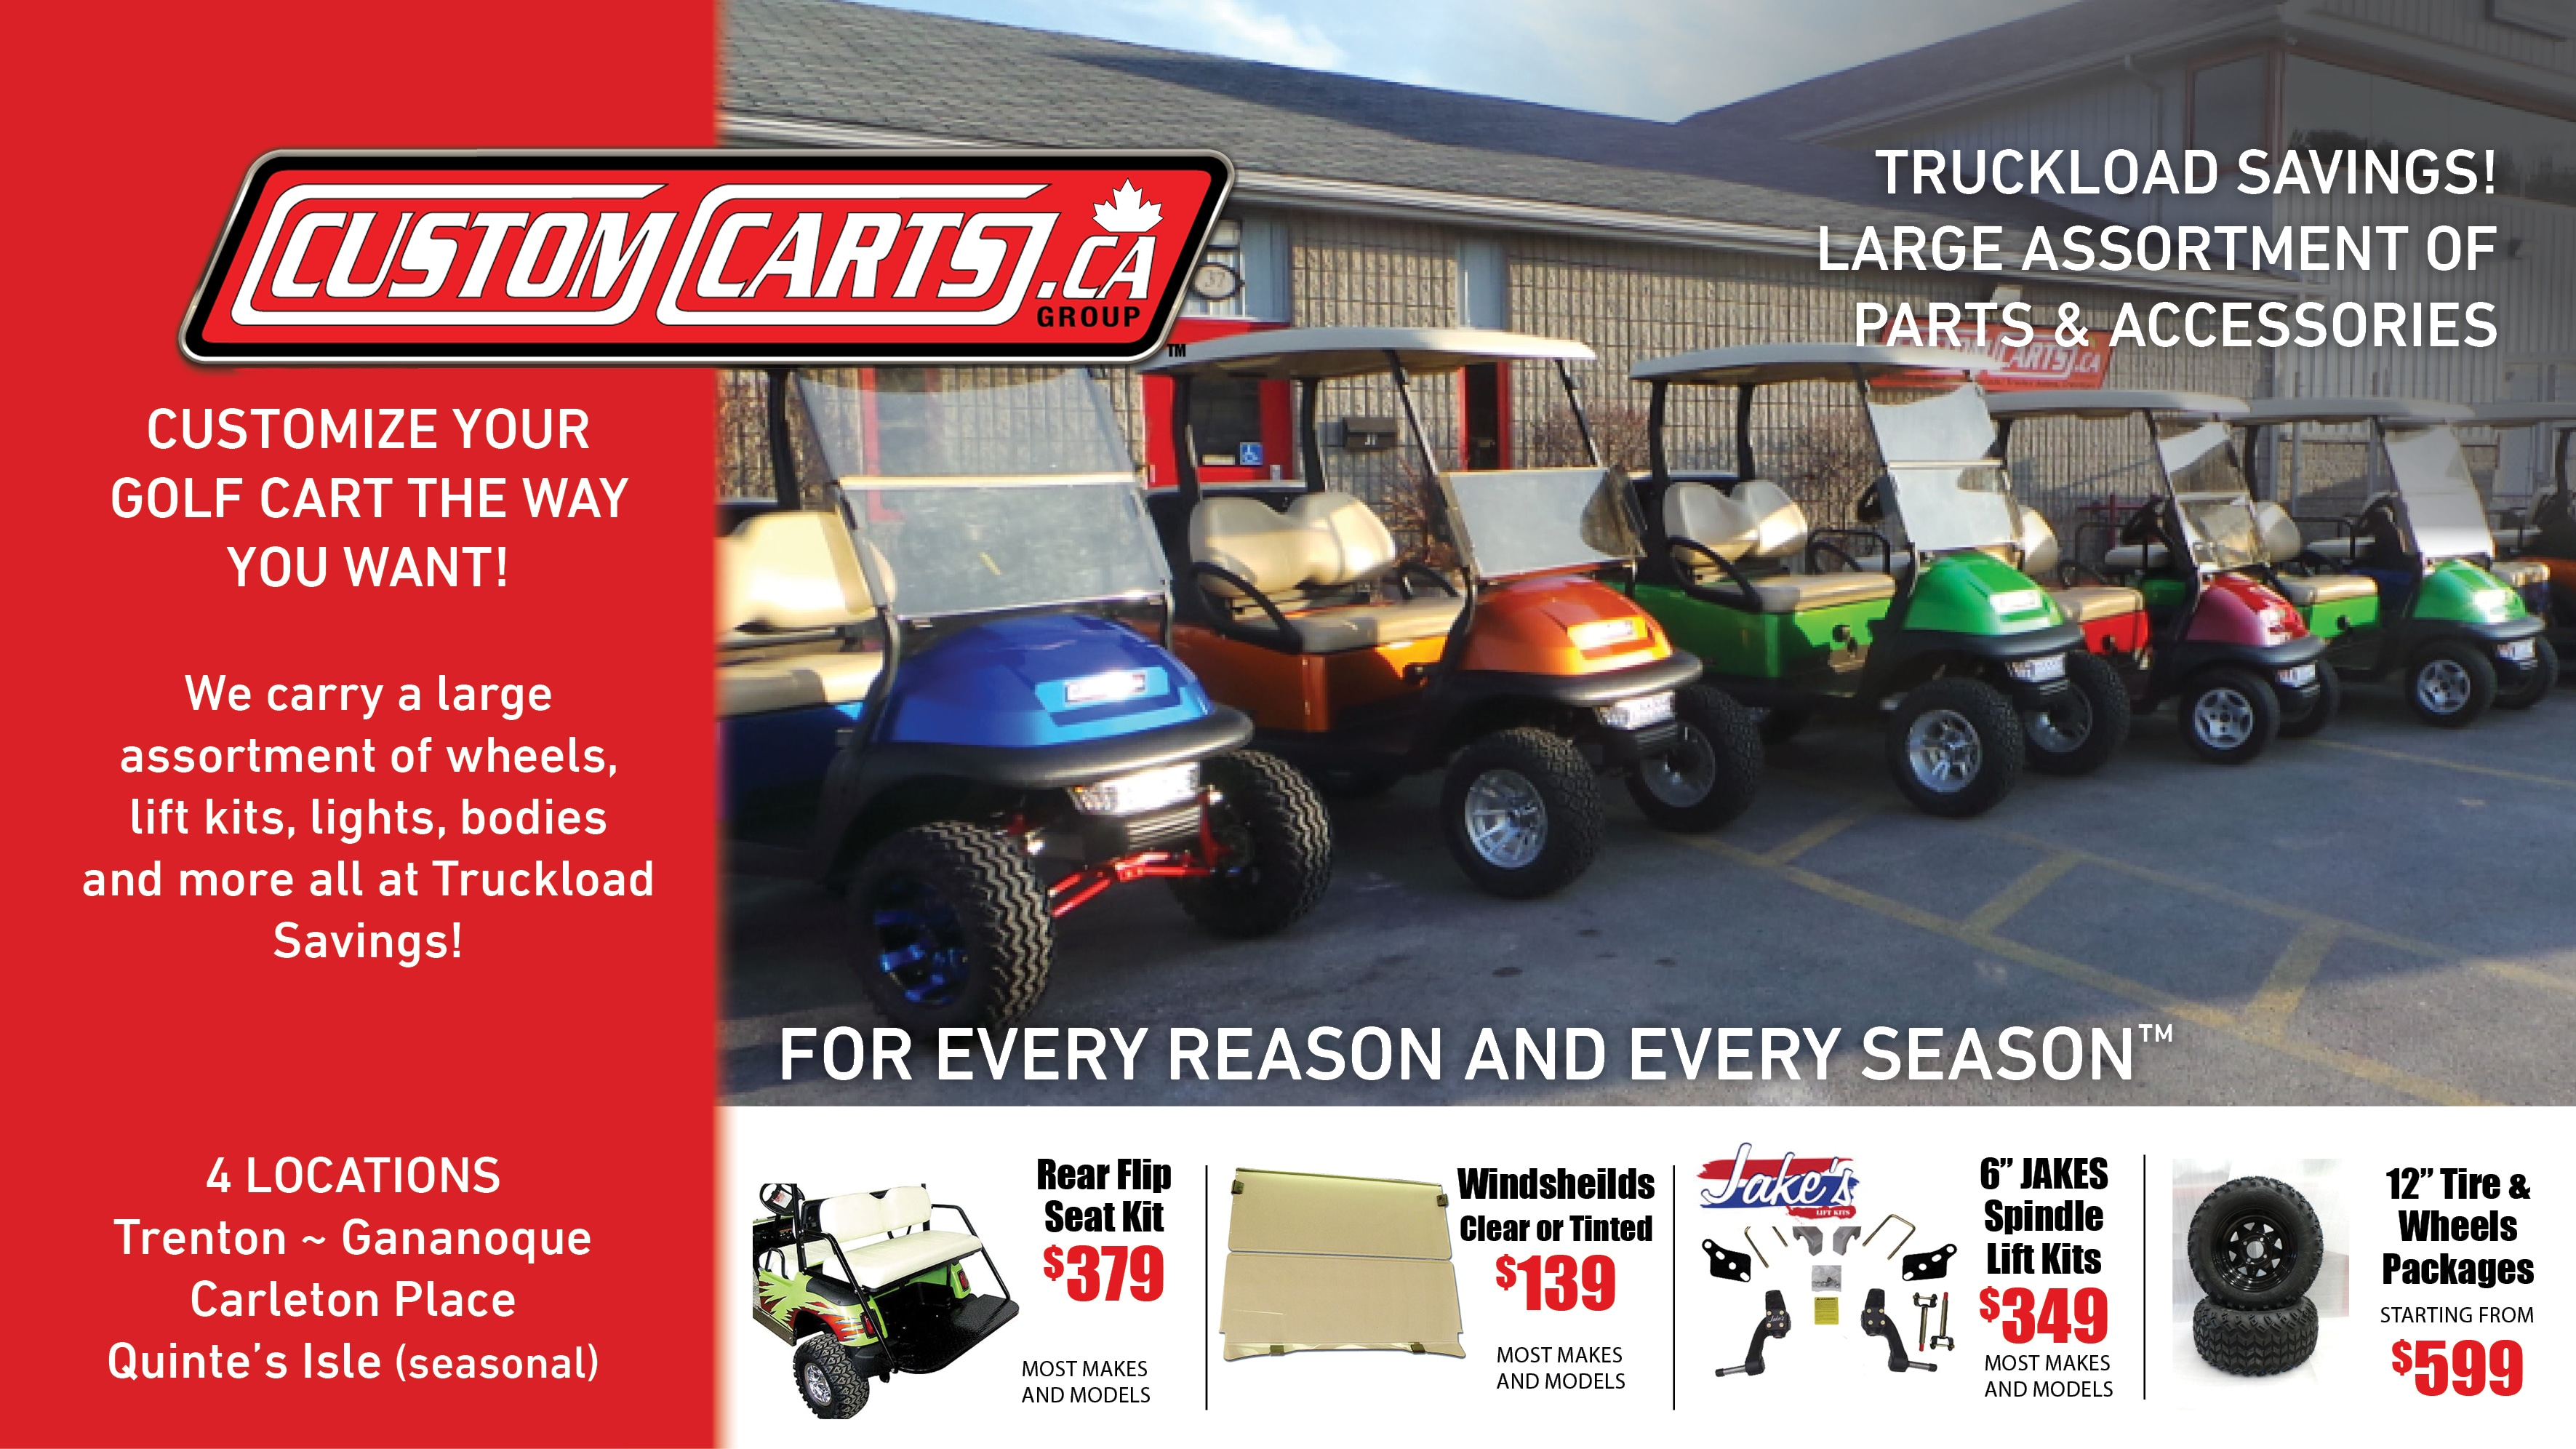 Customcarts.ca - Golf Carts and Golf Car Parts Superstore on golf carts for schools, utv trailers, tool box trailers, golf carts less than 500, bus trailers, car trailers, golf refreshment carts, golf carts vehicle, golf hand carts, golf push carts, golf carts junk, golf carts for the beach, grill trailers, golf carts 1940, atv trailers, golf carts for 1000 dollars, 4 wheeler trailers, golf carts stuck in the snow, side by side trailers, crane trailers,